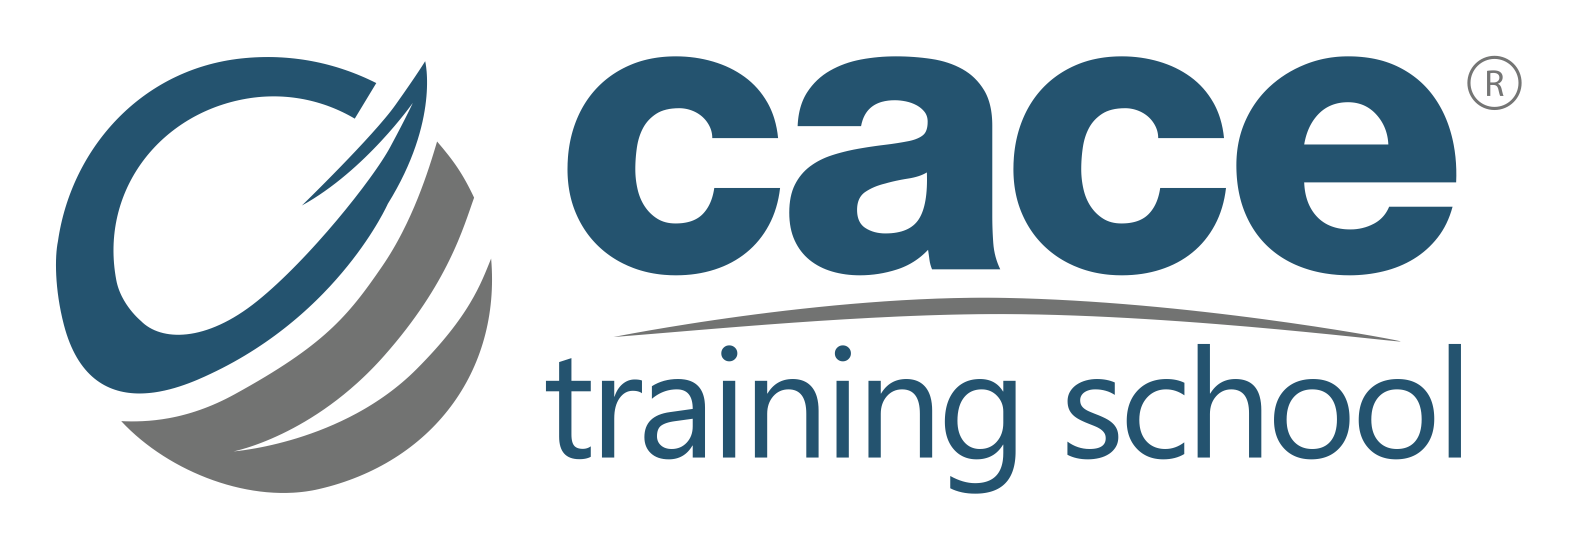 CACE Training School